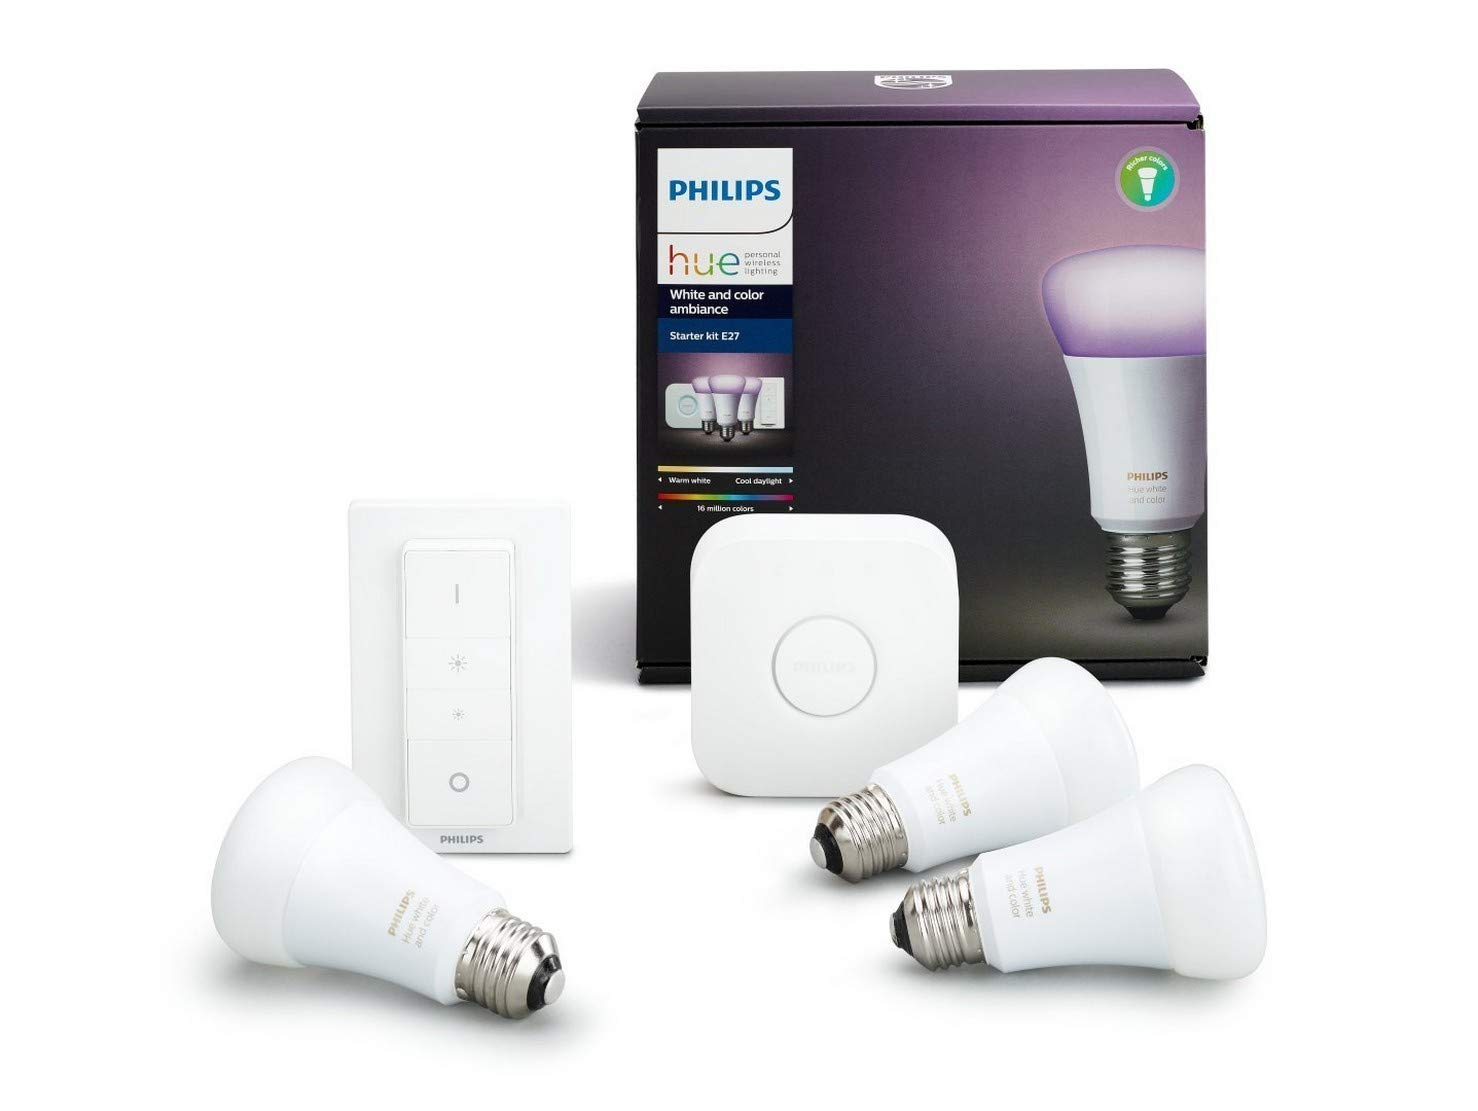 Philips Hue White And Color Ambiance Starter Kit Con 3 Lampadine E27, 1 Bridge E 1 Telecomando Dimmer Switch, Compatibile Con Google Assistant by Philips